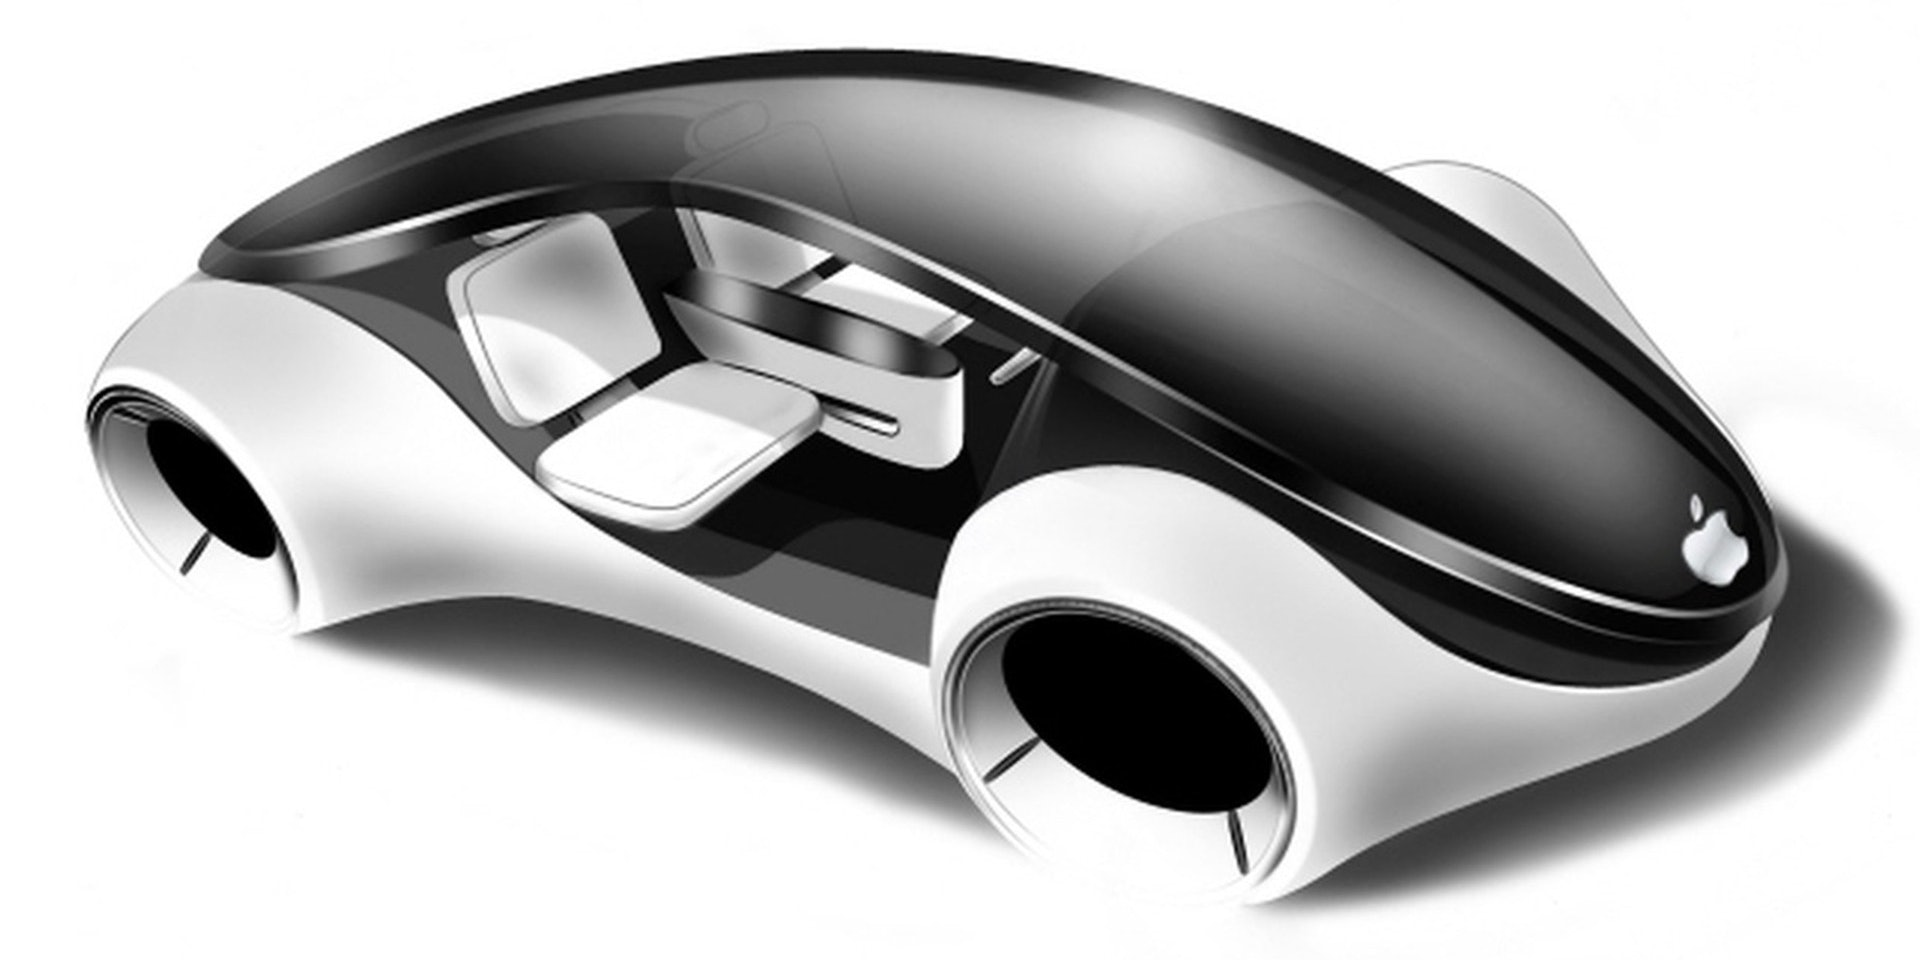 The yet-to-be-released Apple Car is illustrated in unofficial concept art.